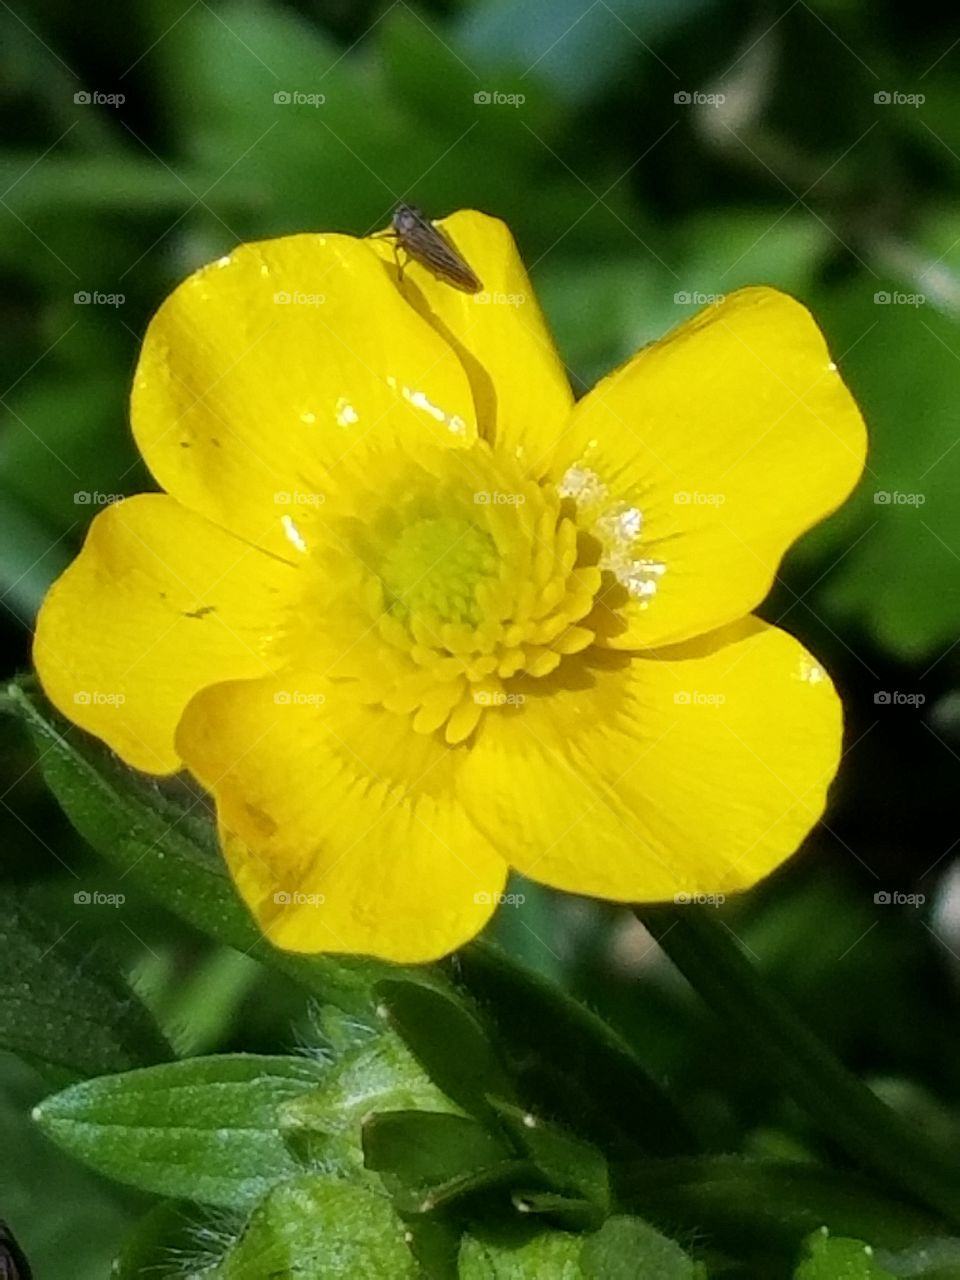 Tiny yellow flowering plant with a tiny insect